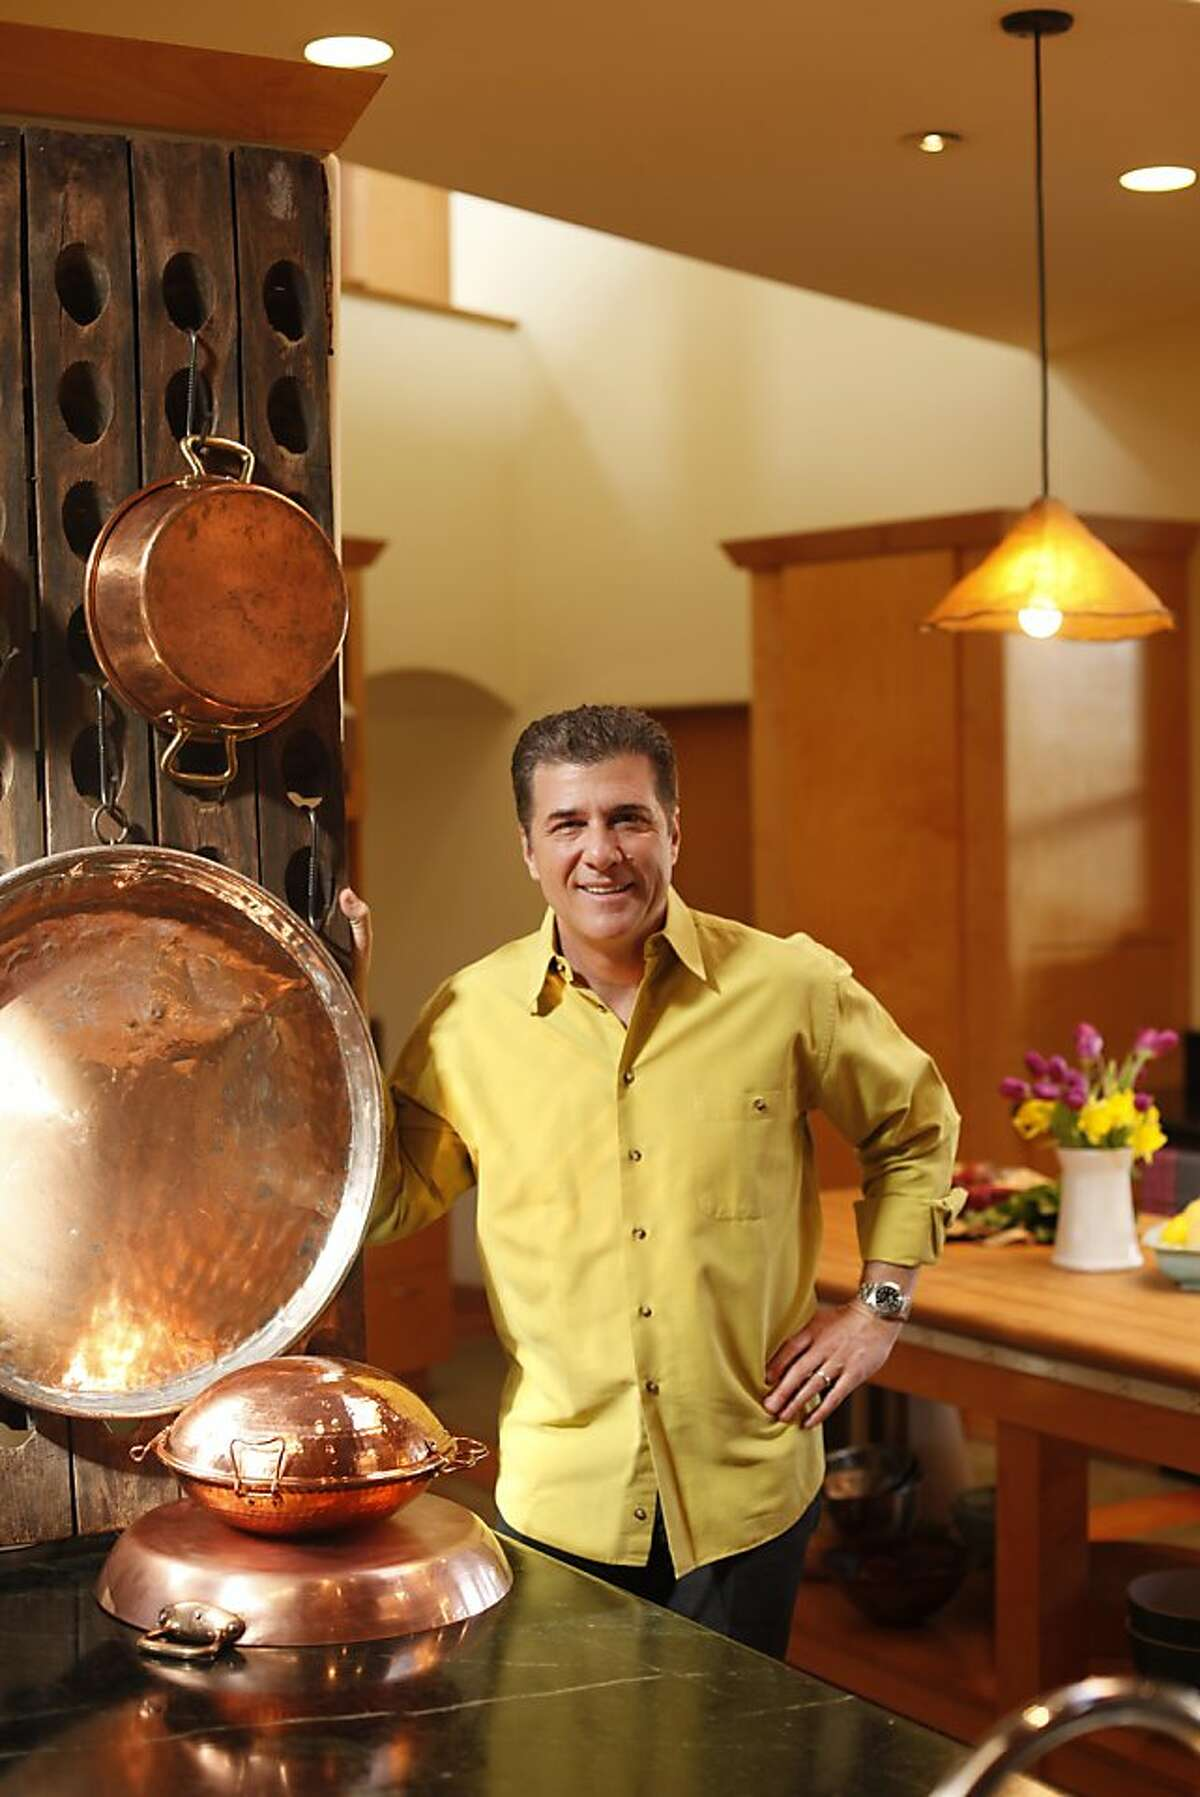 The home kitchen of Michael Chiarello in St. Helena, California, on Tuesday, April 5, 2011.